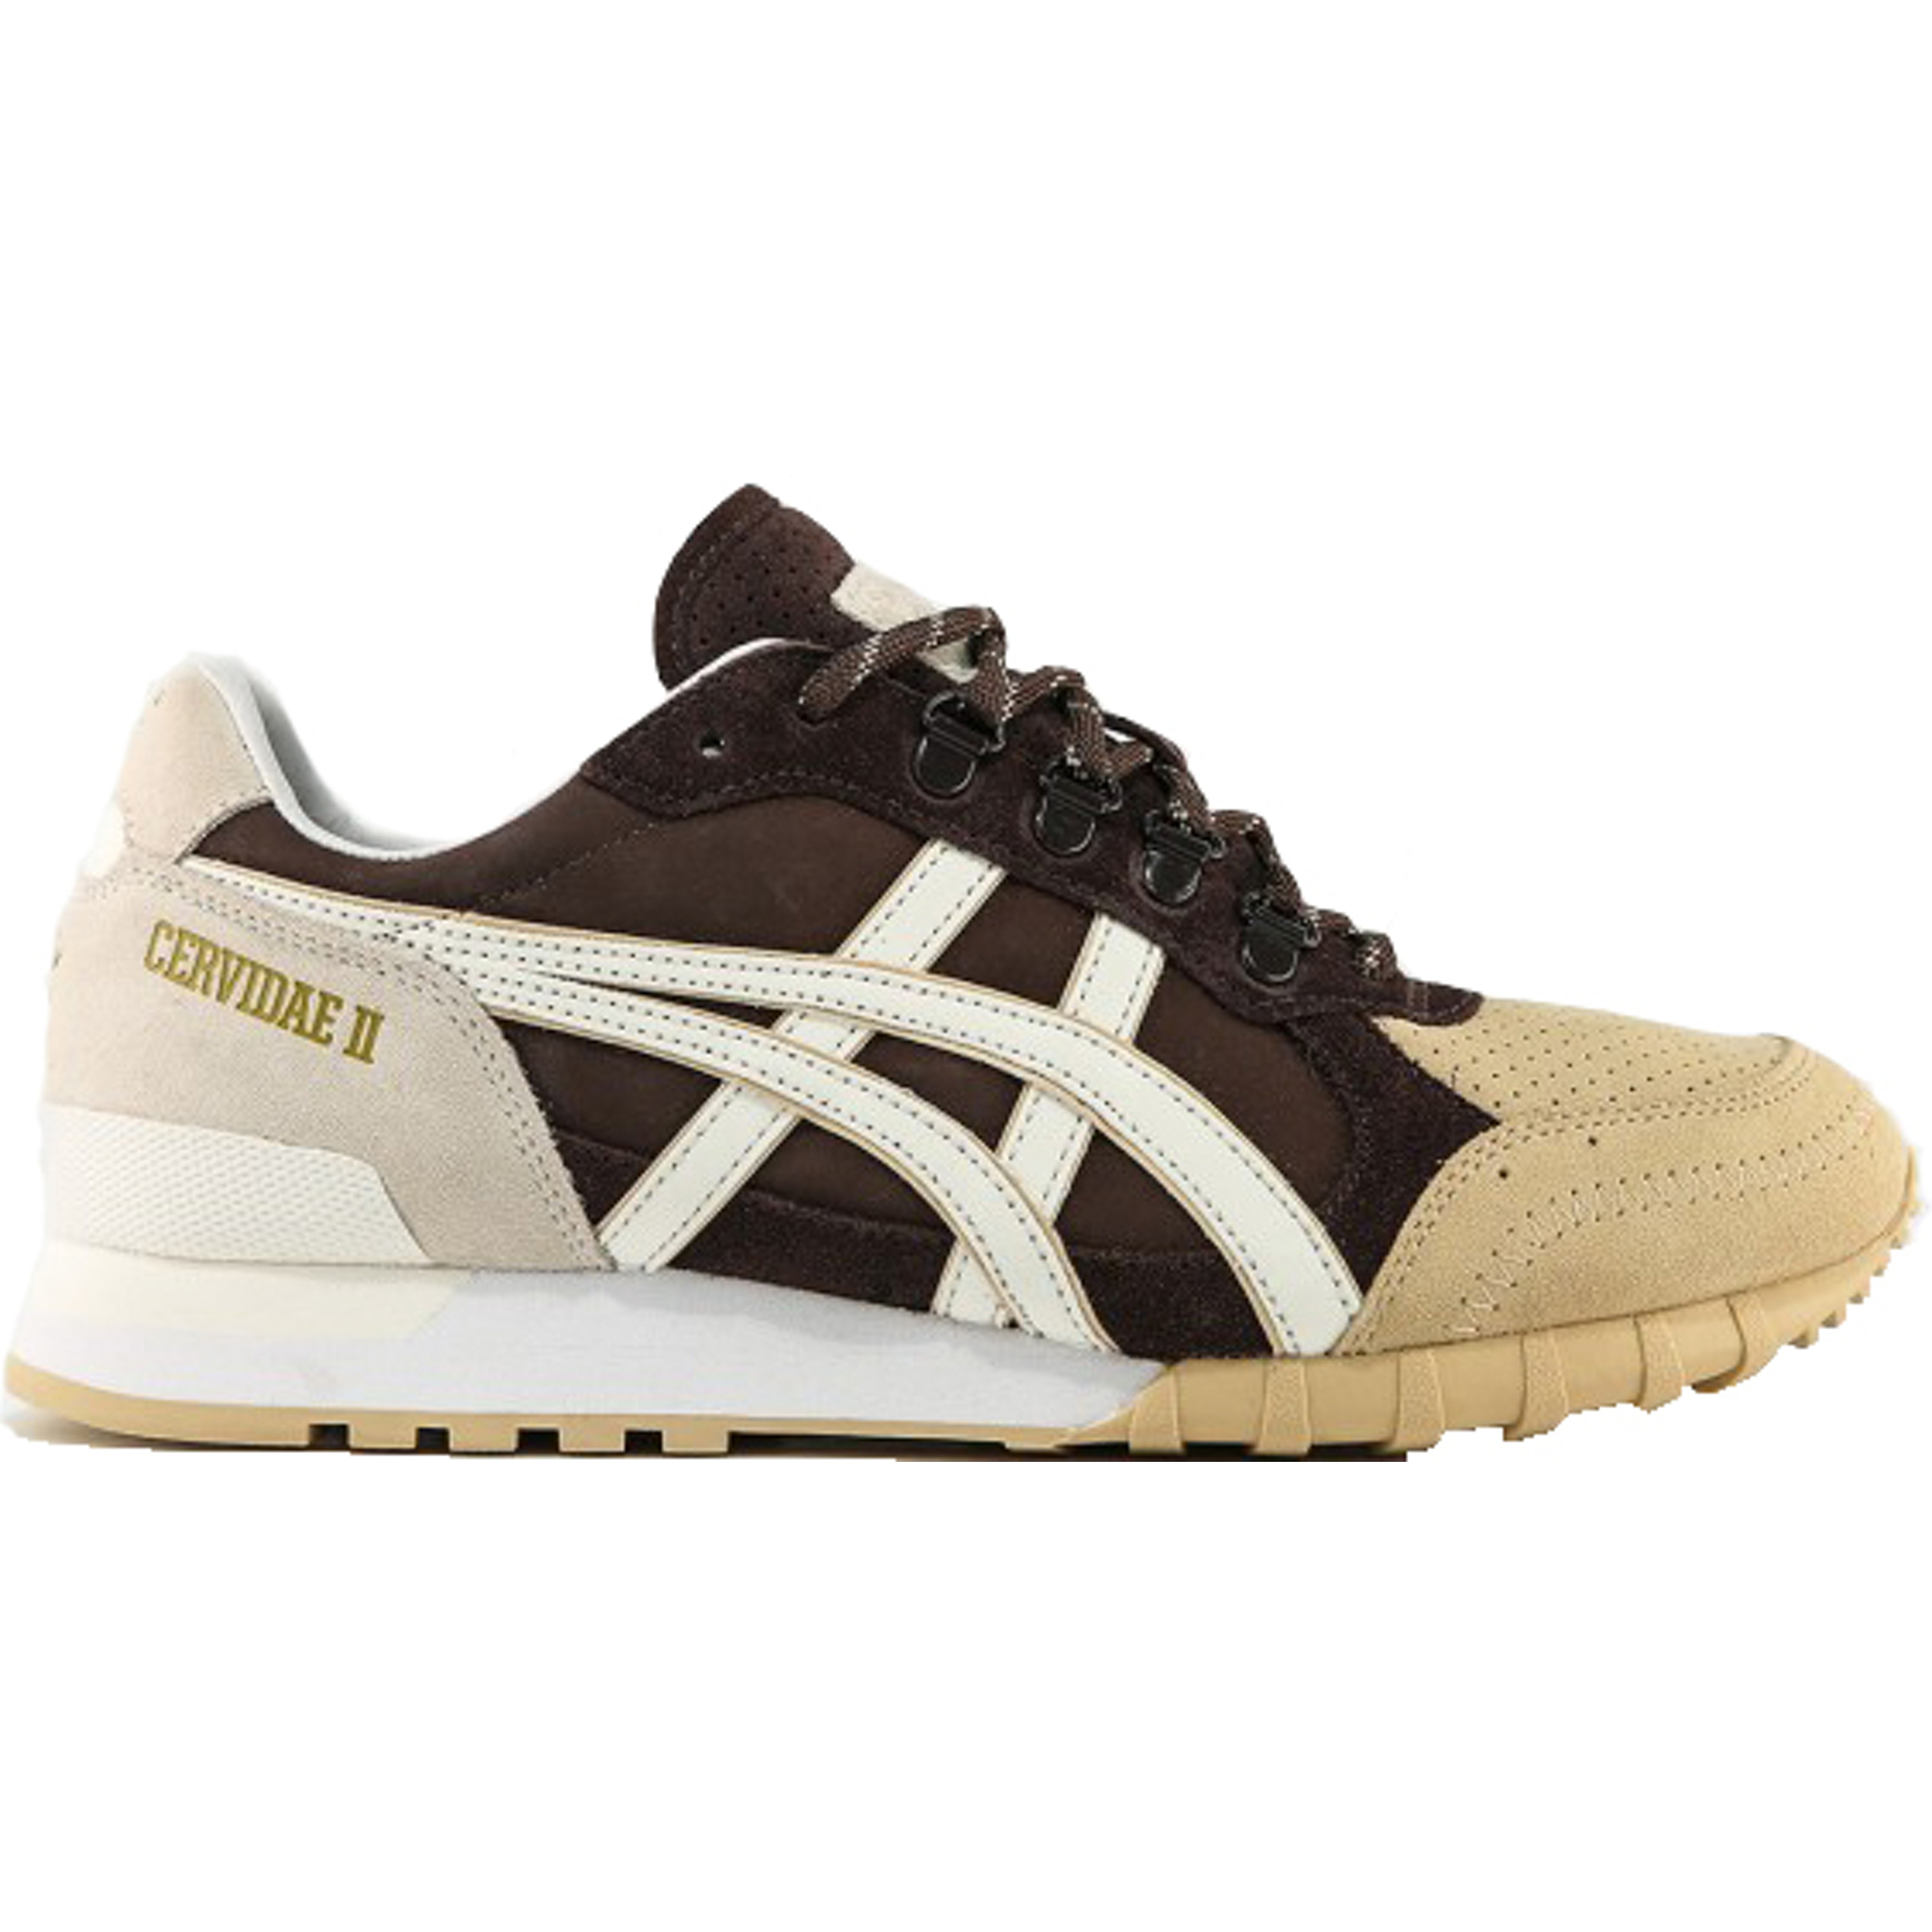 "Asics Onitsuka Tiger Colorado 85 Woei ""Cervidae II"" (D50SK-2801)"